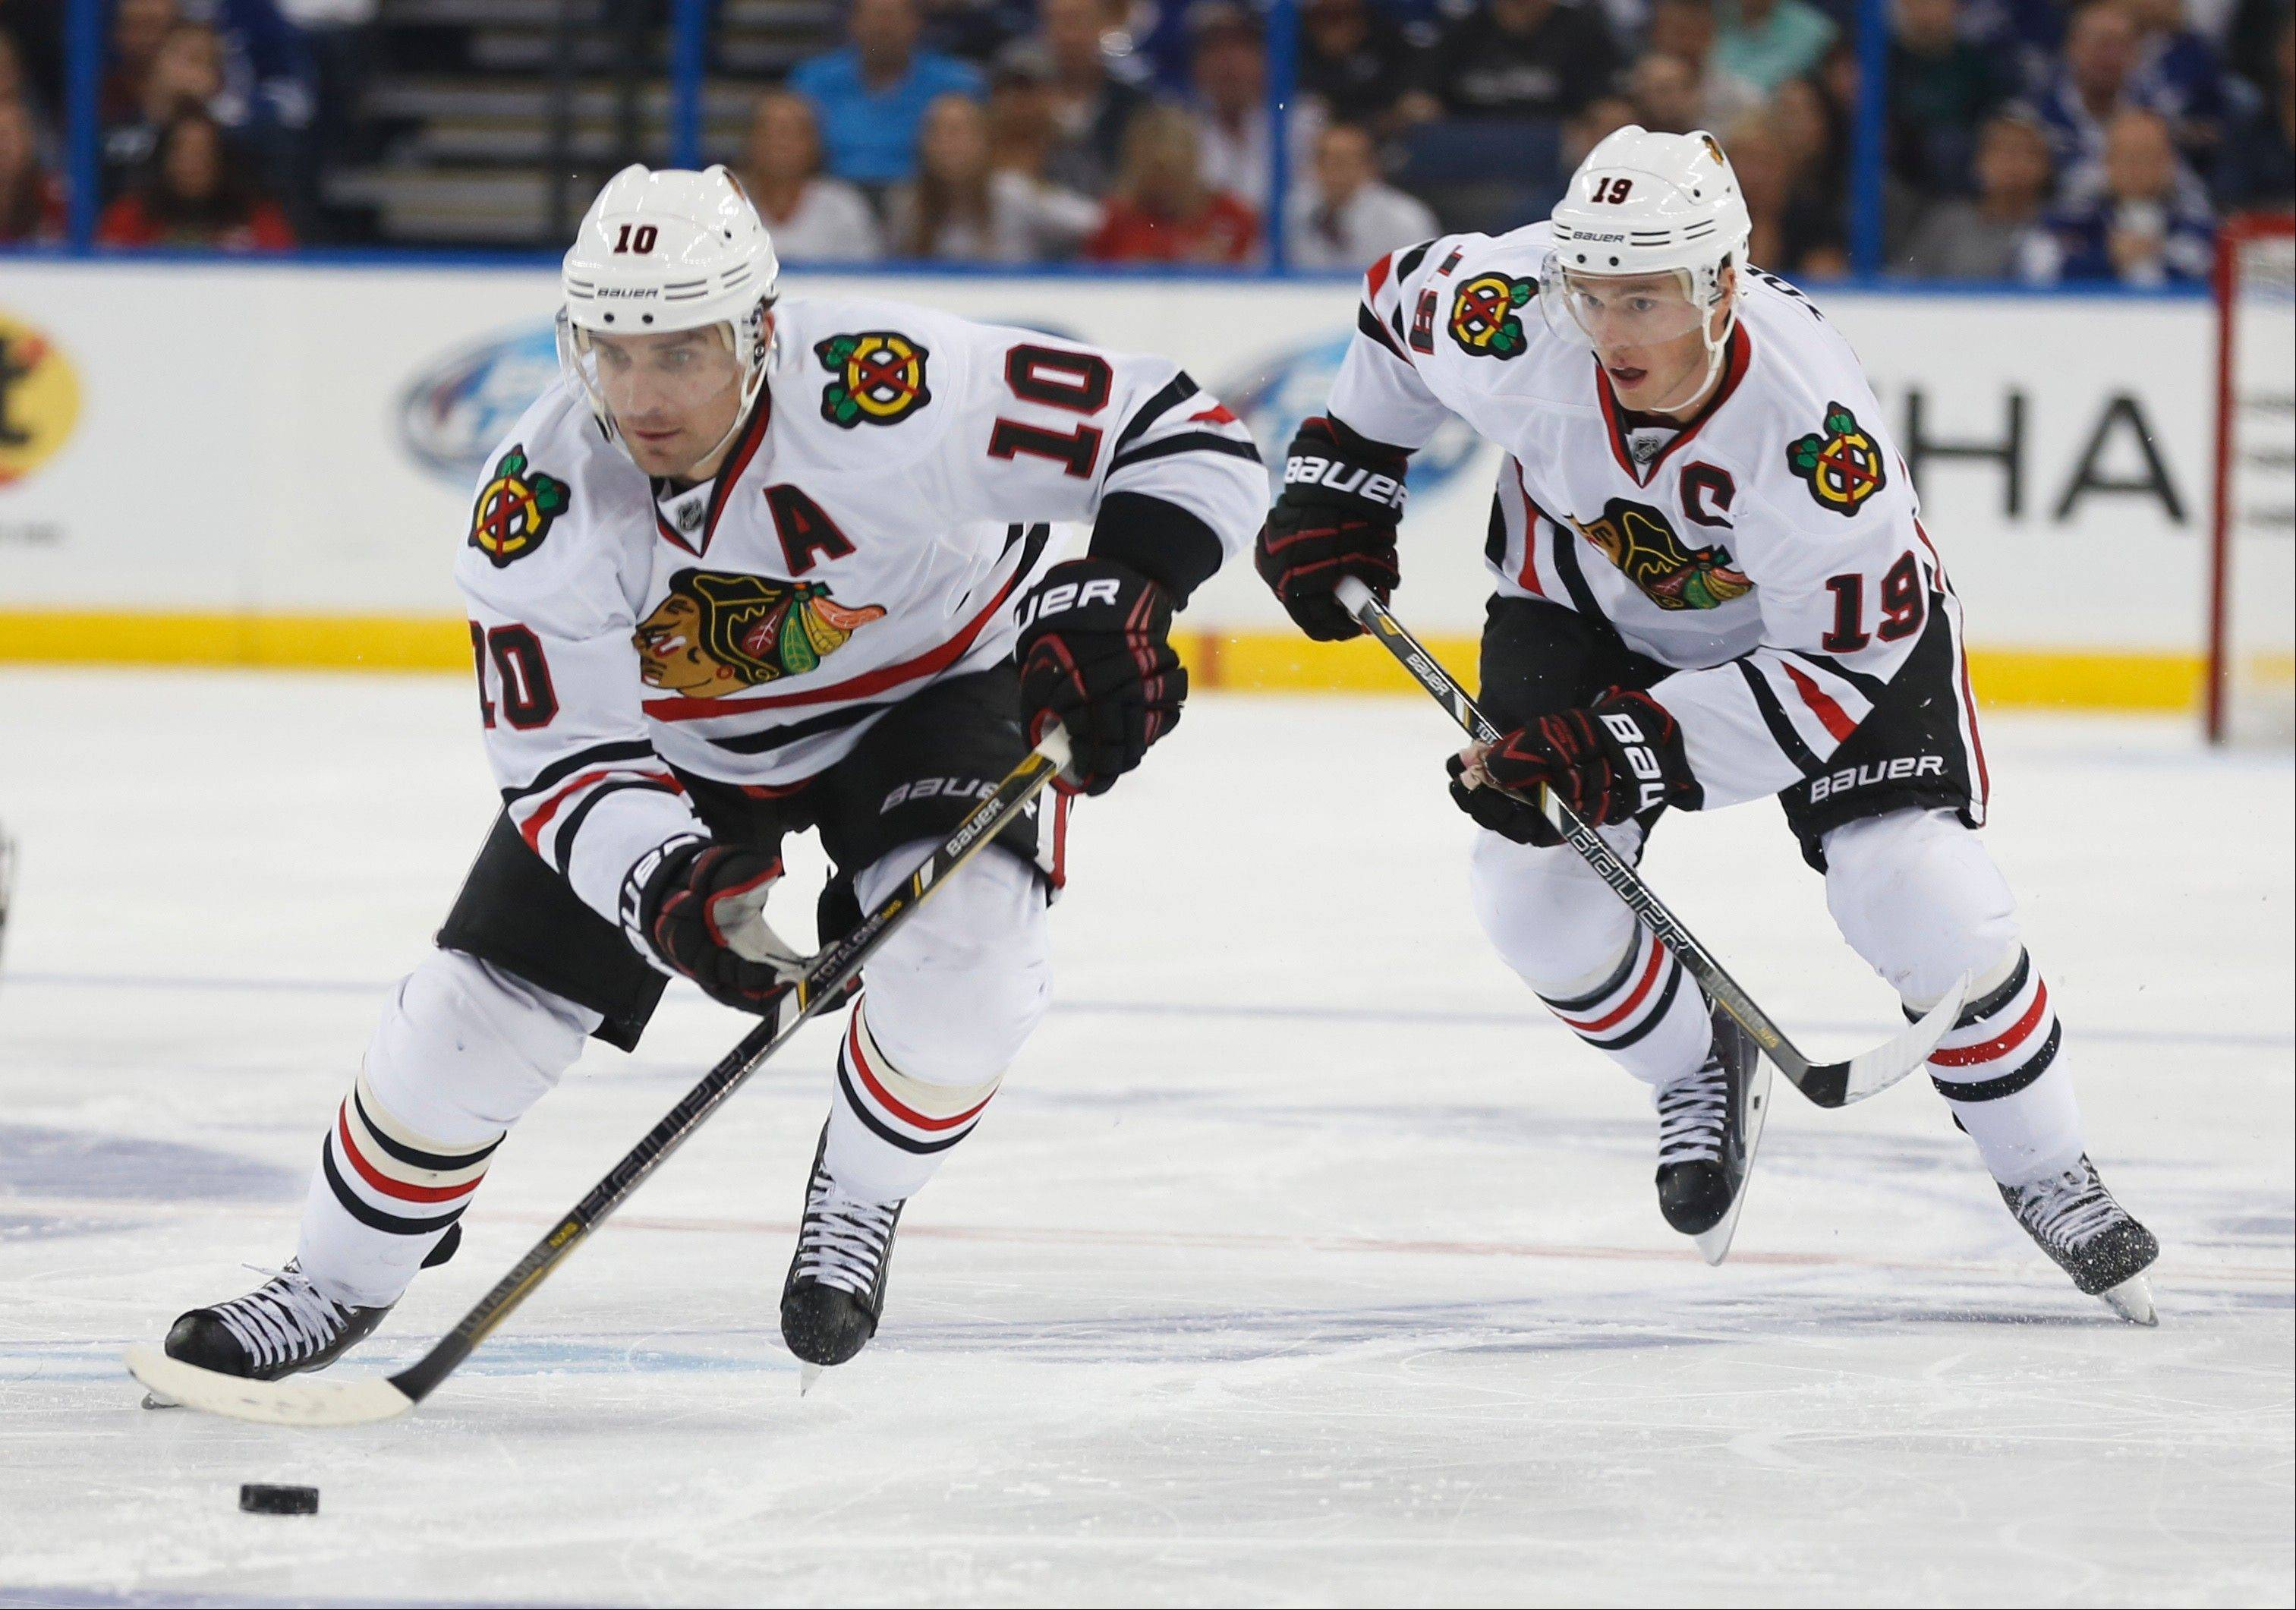 Teammates Patrick Sharp (10) and Jonathan Toews will play for Team Canada in next month�s Olympic Games in Sochi along with Blackhawks defenseman Duncan Keith. While Brent Seabrook and Corey Crawford didn�t make the Canada�s roster, a total of 10 Blackhawks will be heading to Sochi for Olympic duty.